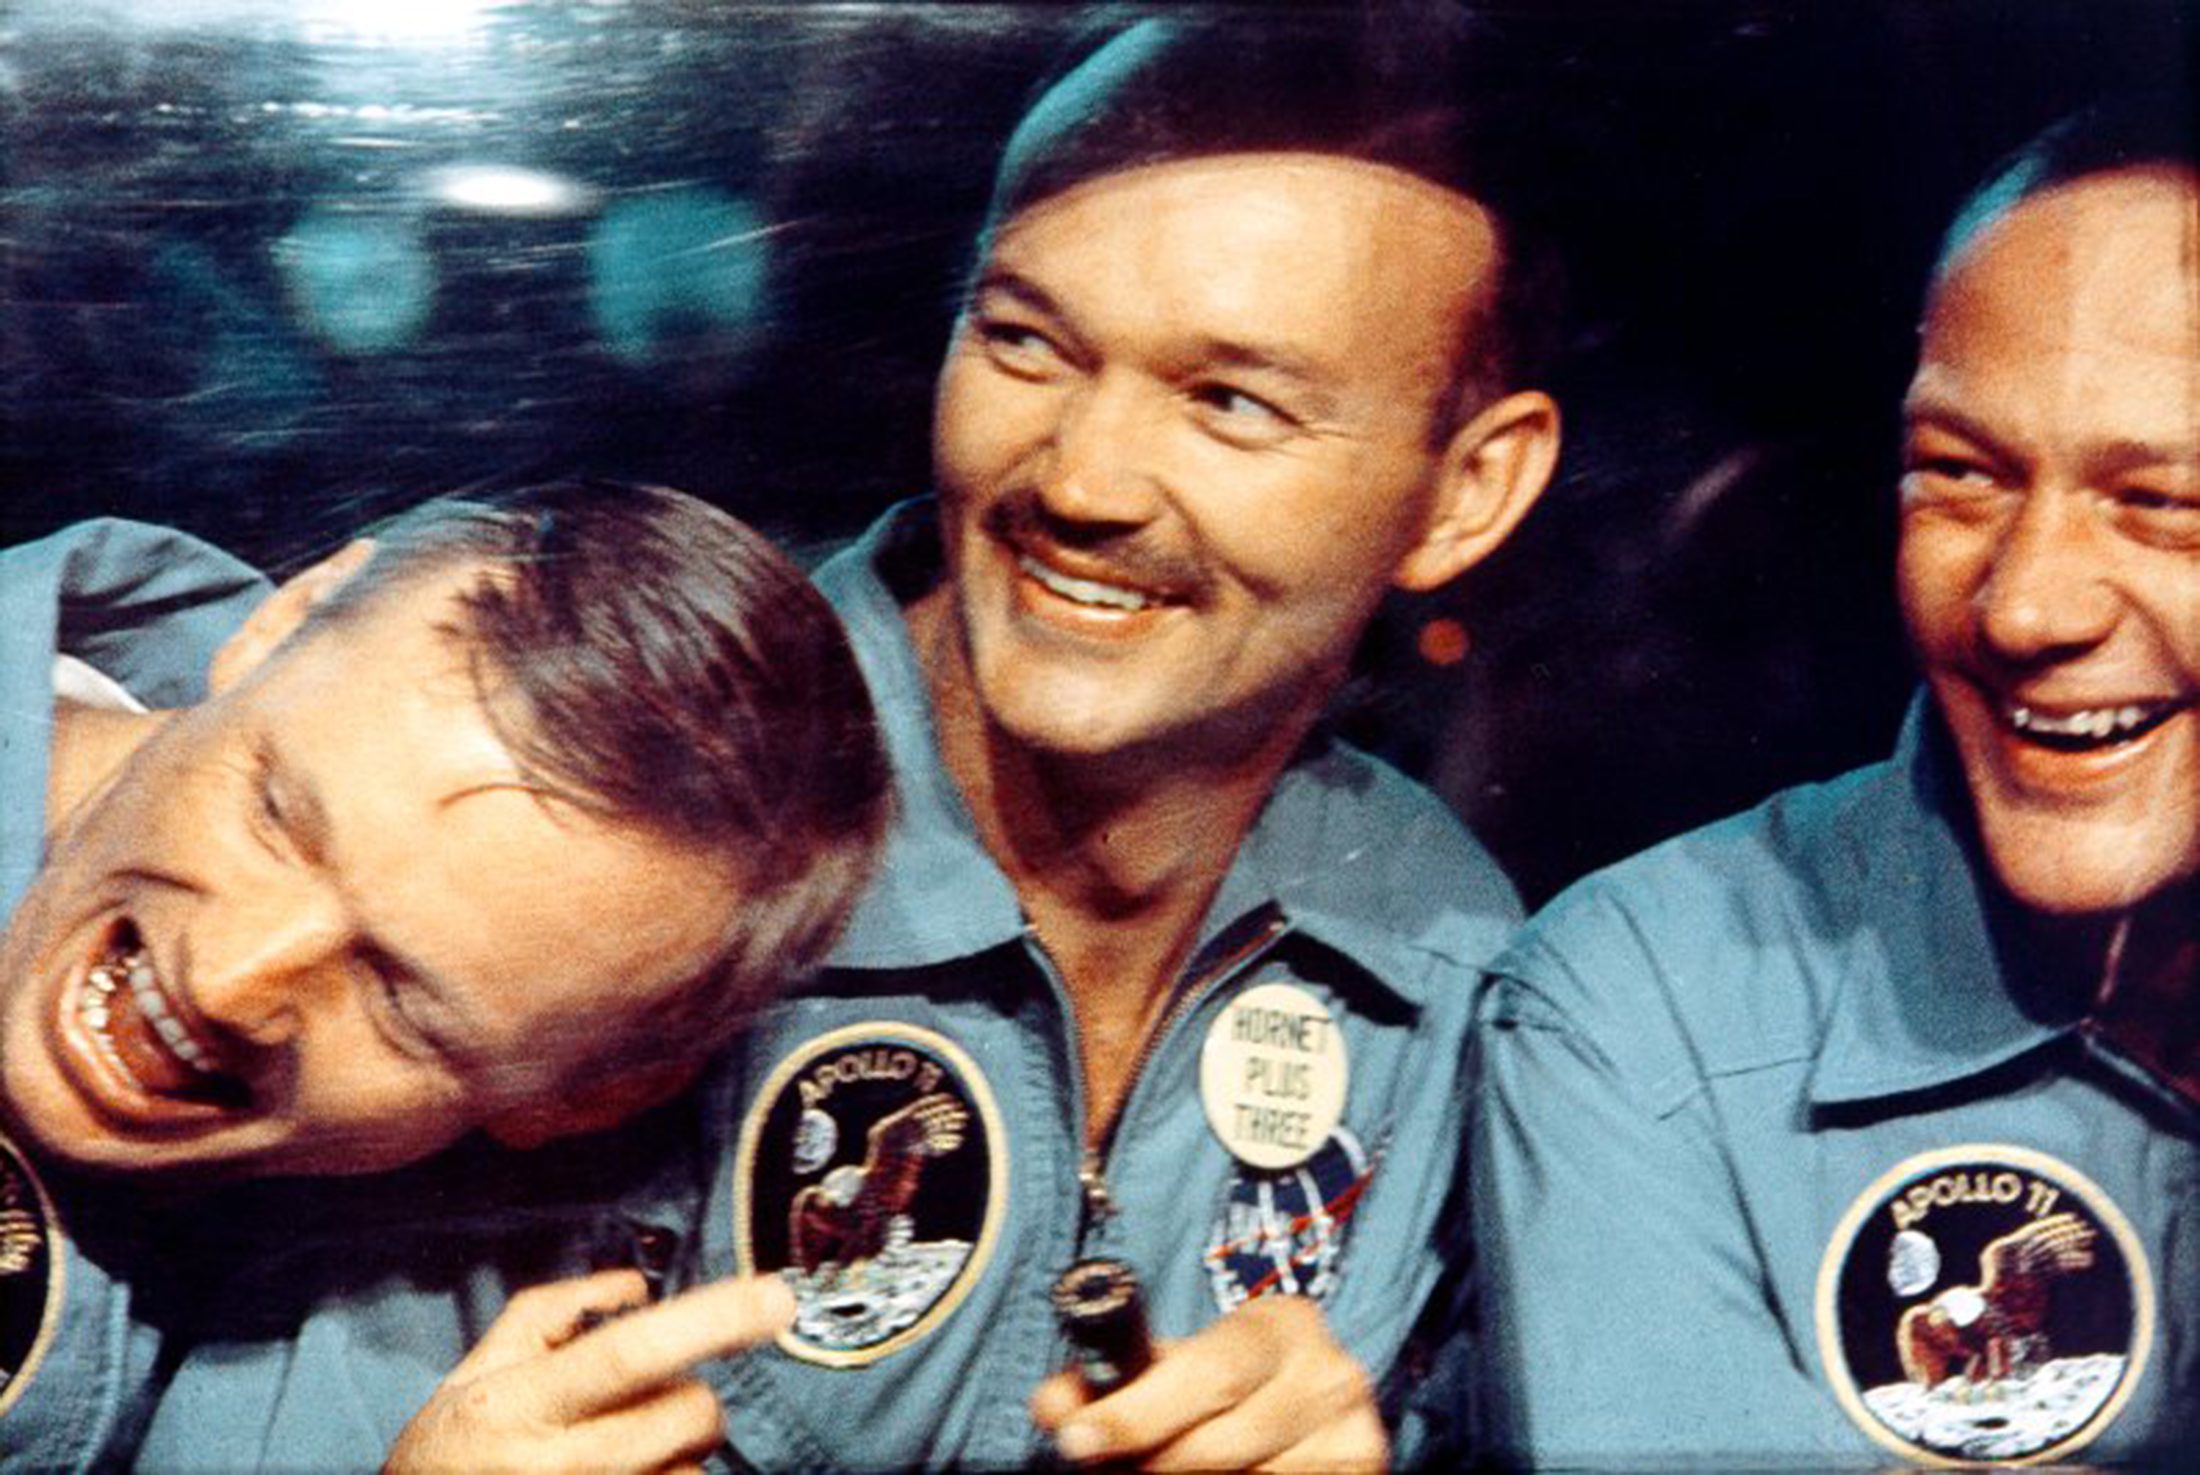 Apollo 11 astronauts Neil Armstrong (L), Michael Collins and Buzz Aldrin smile through the window of the mobile quarantine van in this NASA handout image dated July 24, 1969. REUTERS/NASA/Handout (UNITED STATES - Tags: SCIENCE TECHNOLOGY) FOR EDITORIAL USE ONLY. NOT FOR SALE FOR MARKETING OR ADVERTISING CAMPAIGNS. THIS IMAGE HAS BEEN SUPPLIED BY A THIRD PARTY. IT IS DISTRIBUTED, EXACTLY AS RECEIVED BY REUTERS, AS A SERVICE TO CLIENTS - TM3E88S1AFY01